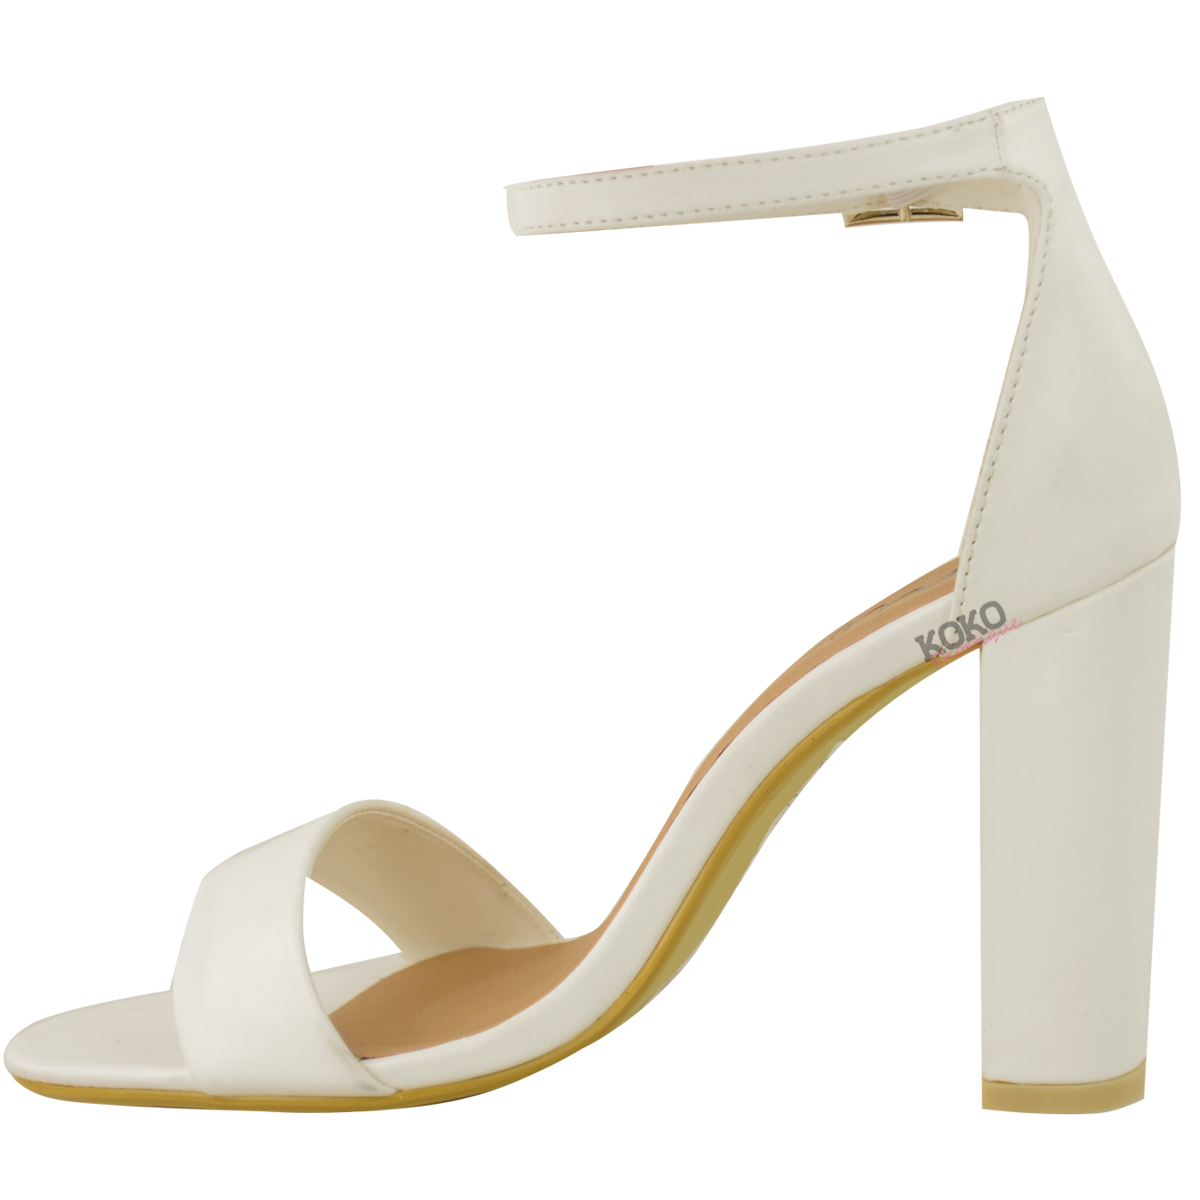 Womens-Ladies-Block-High-Heels-Ankle-Strap-Sexy-Open-Toe-Sandals-Shoes-Size-New miniatuur 40